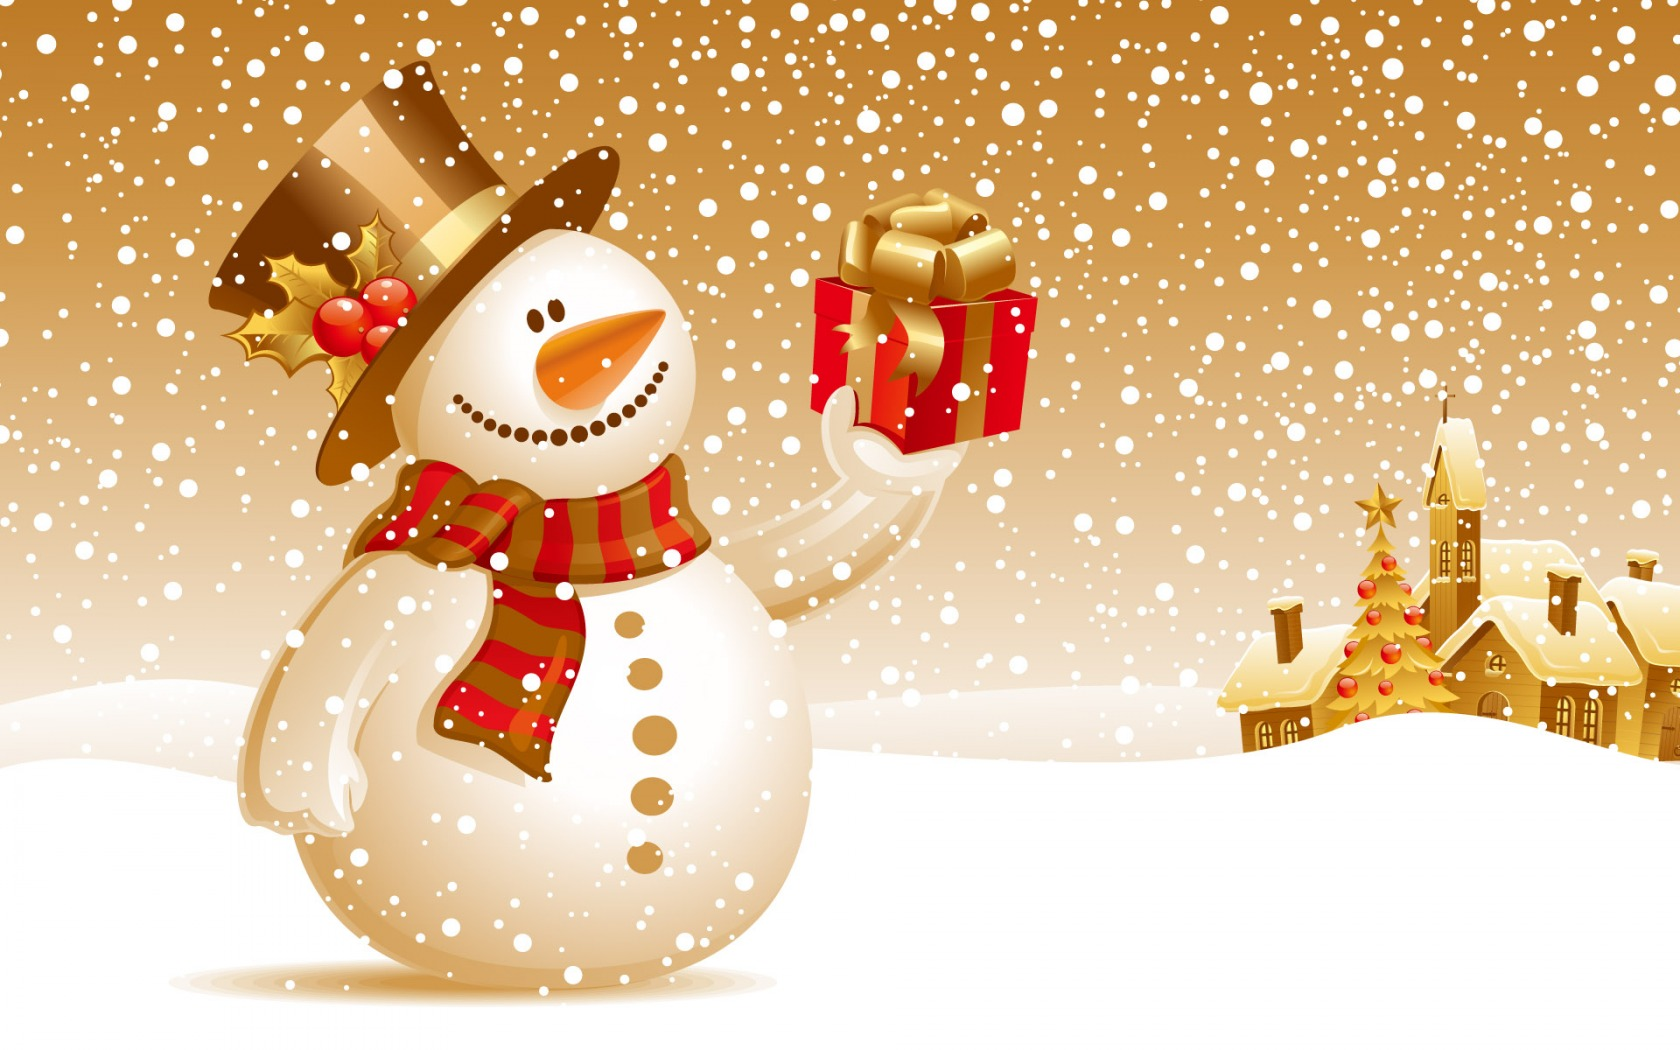 Christmas Snowman Wallpaper Christmas Holidays Wallpapers in jpg ...